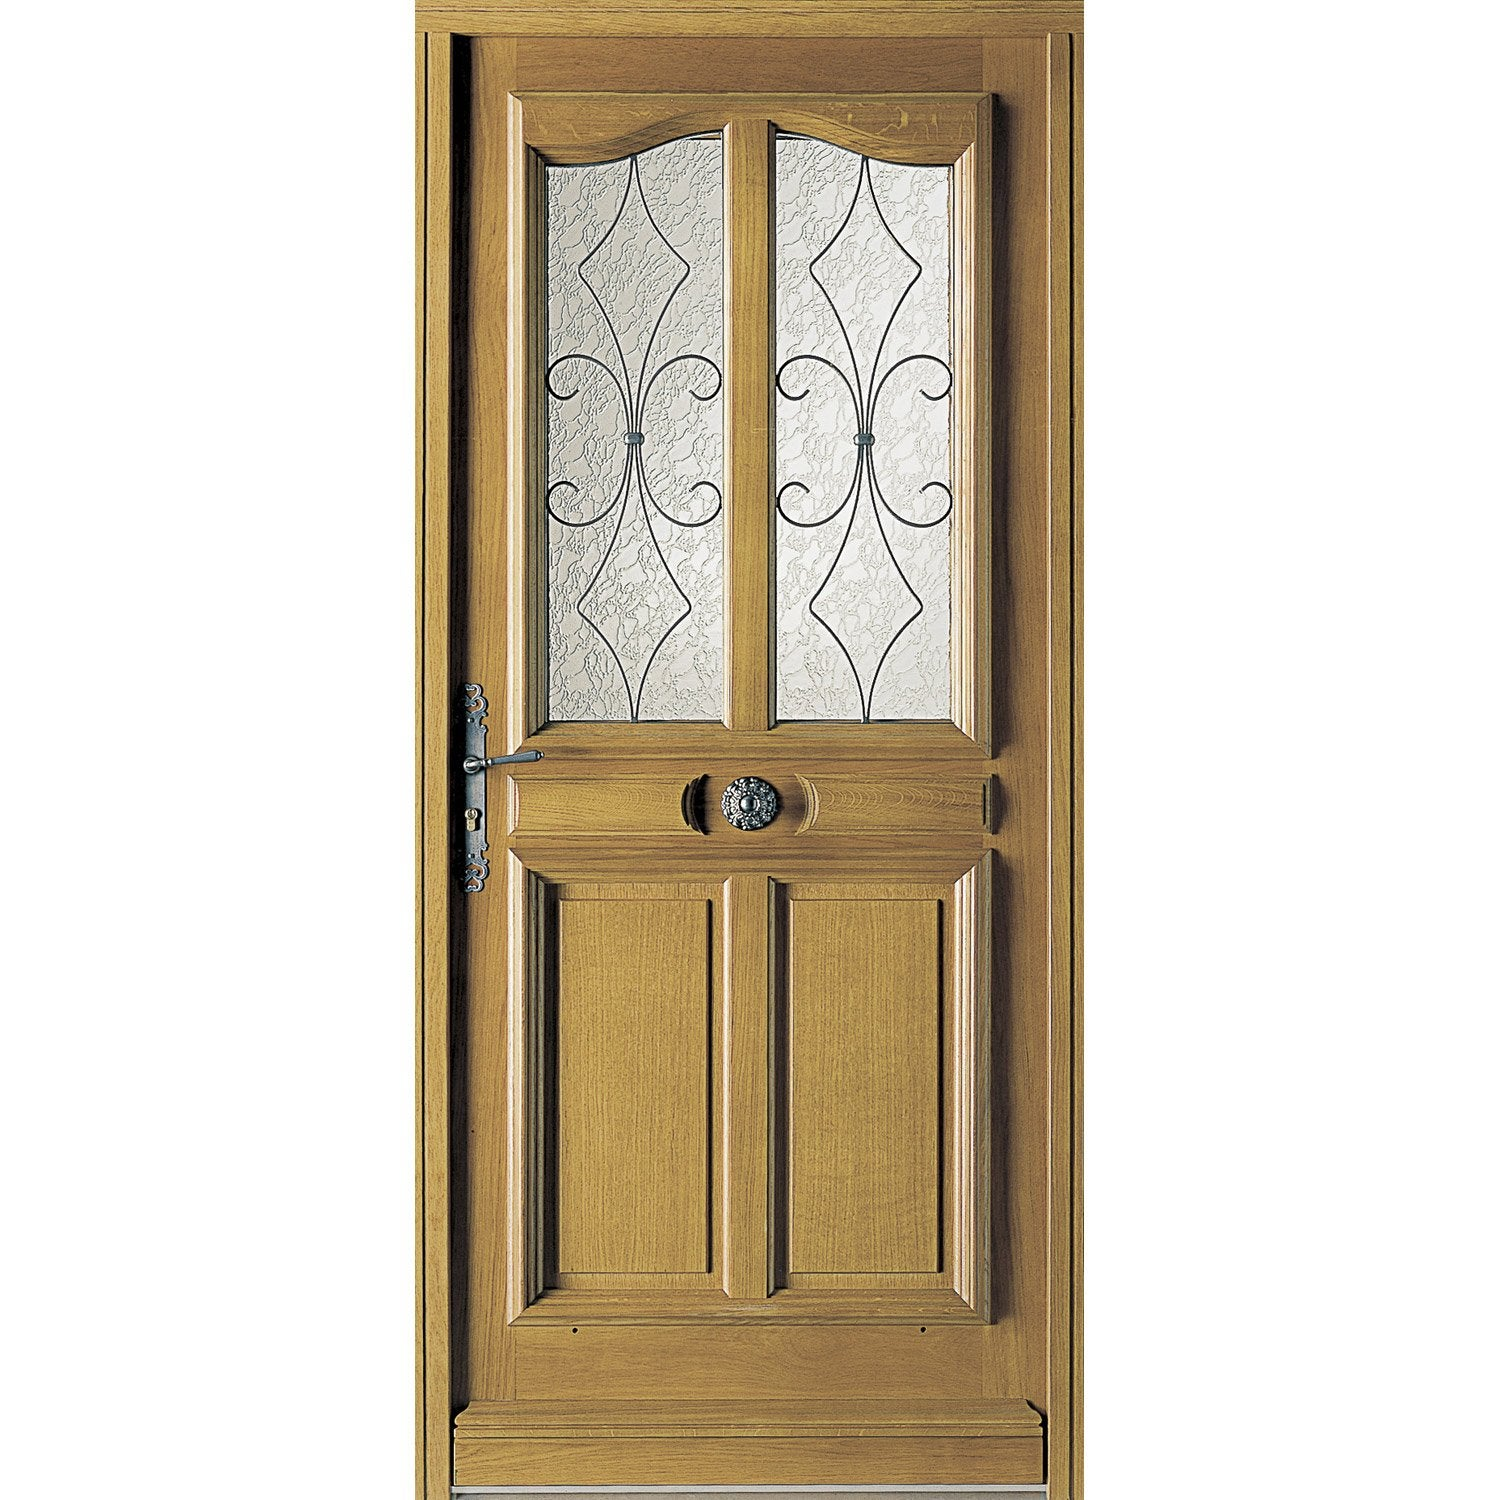 porte d entr 233 e sur mesure en bois courchevel excellence leroy merlin